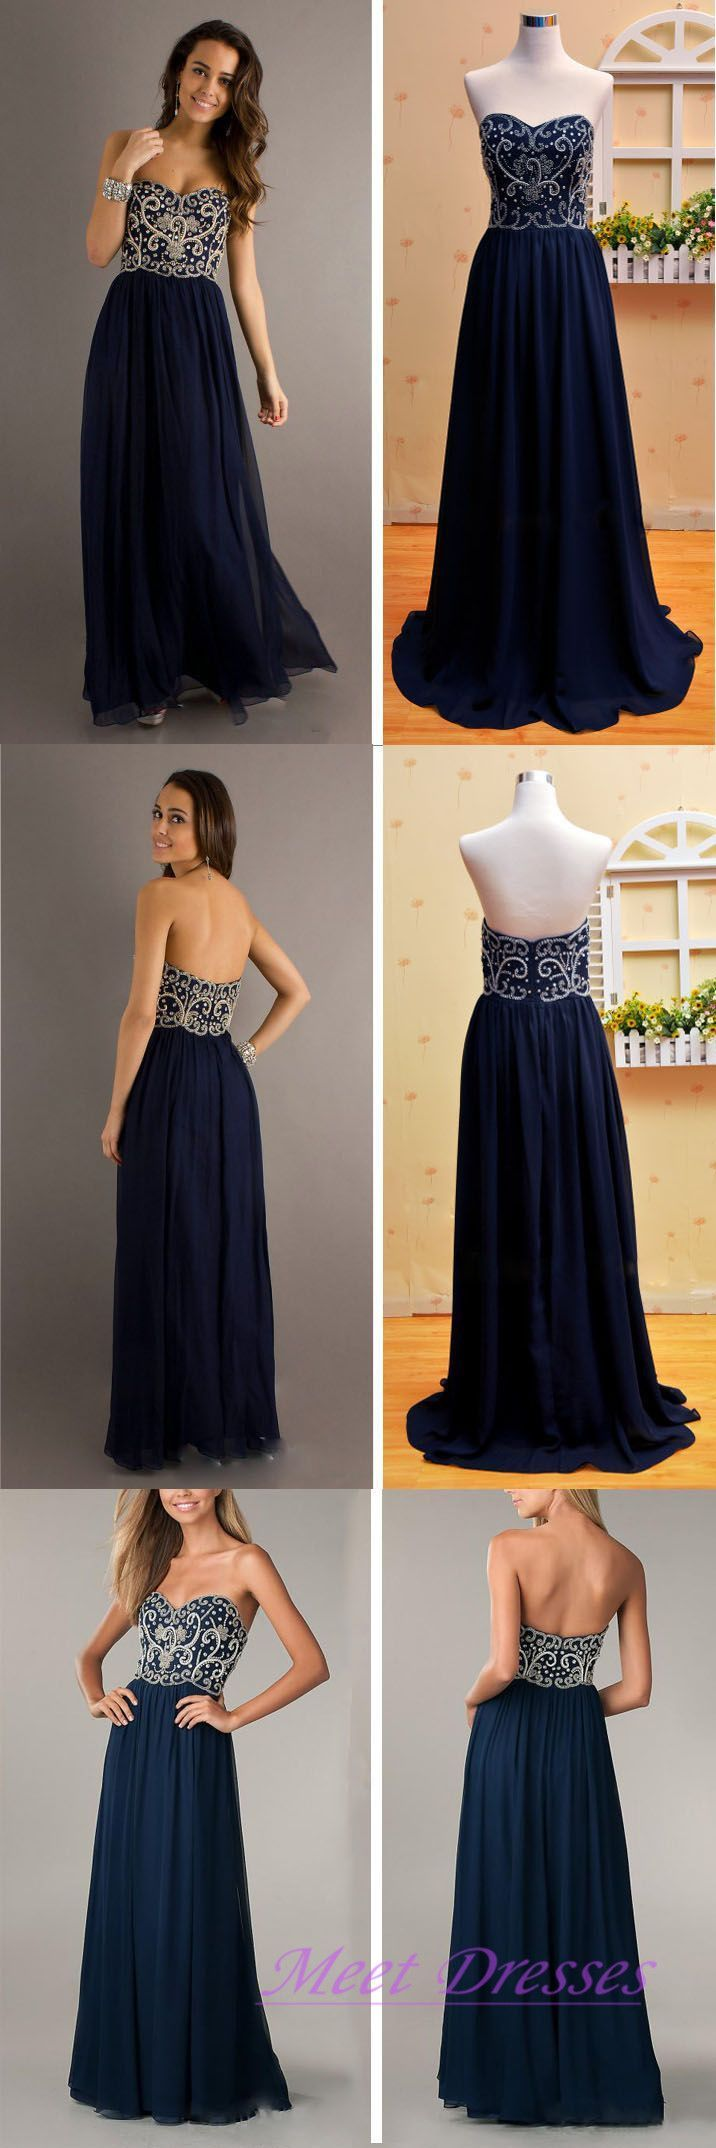 Cute prom cocktail dresses 2018